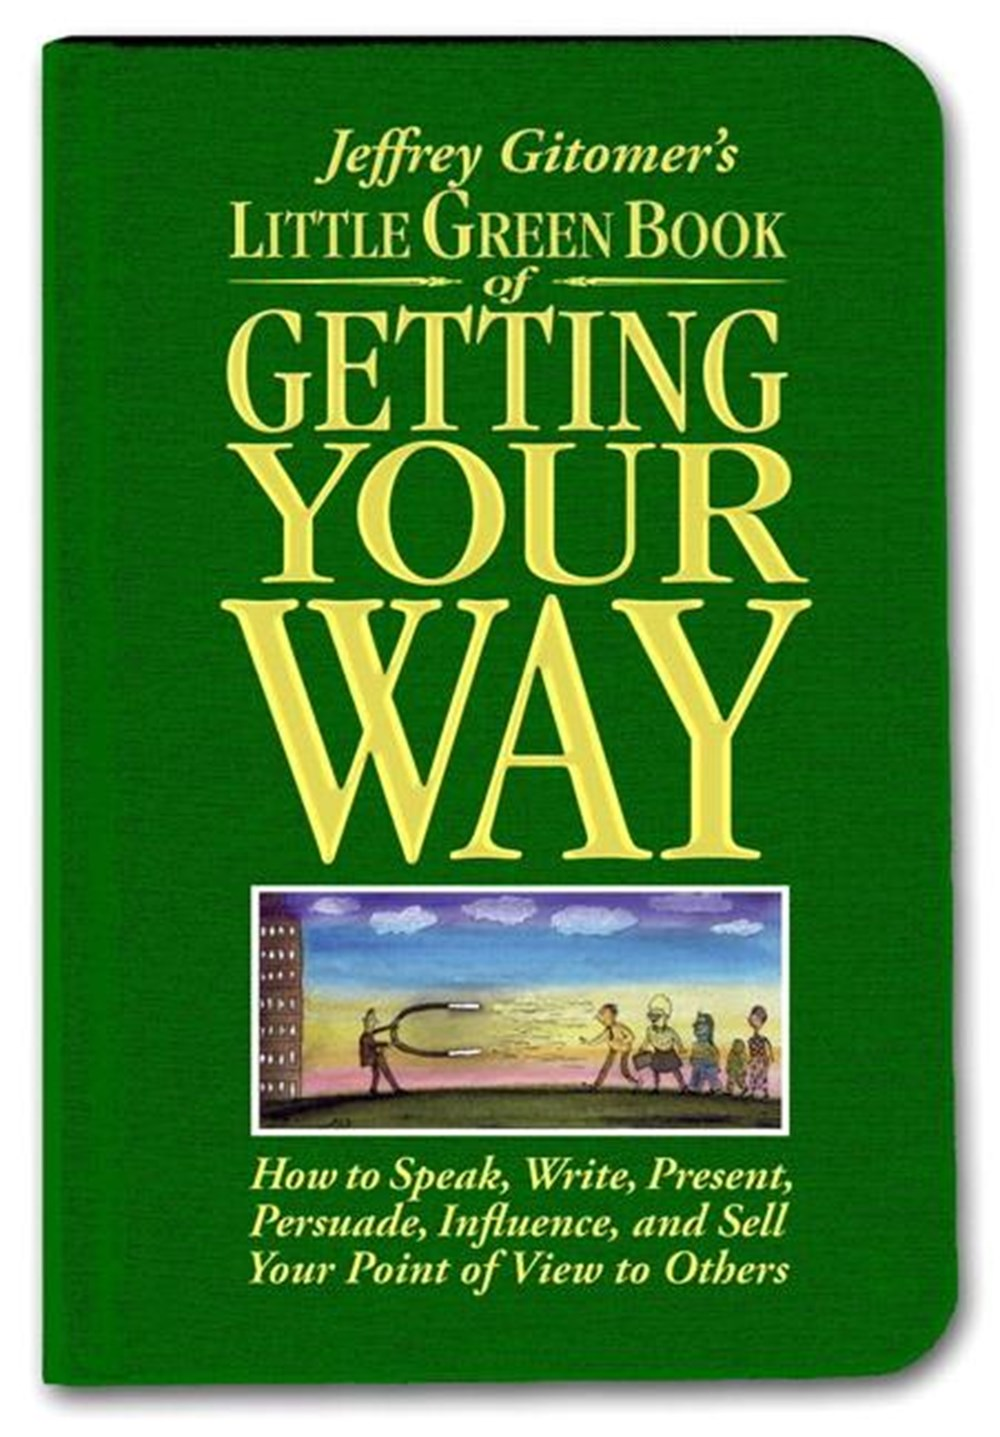 Little Green Book of Getting Your Way How to Speak, Write, Present, Persuade, Influence, and Sell Yo